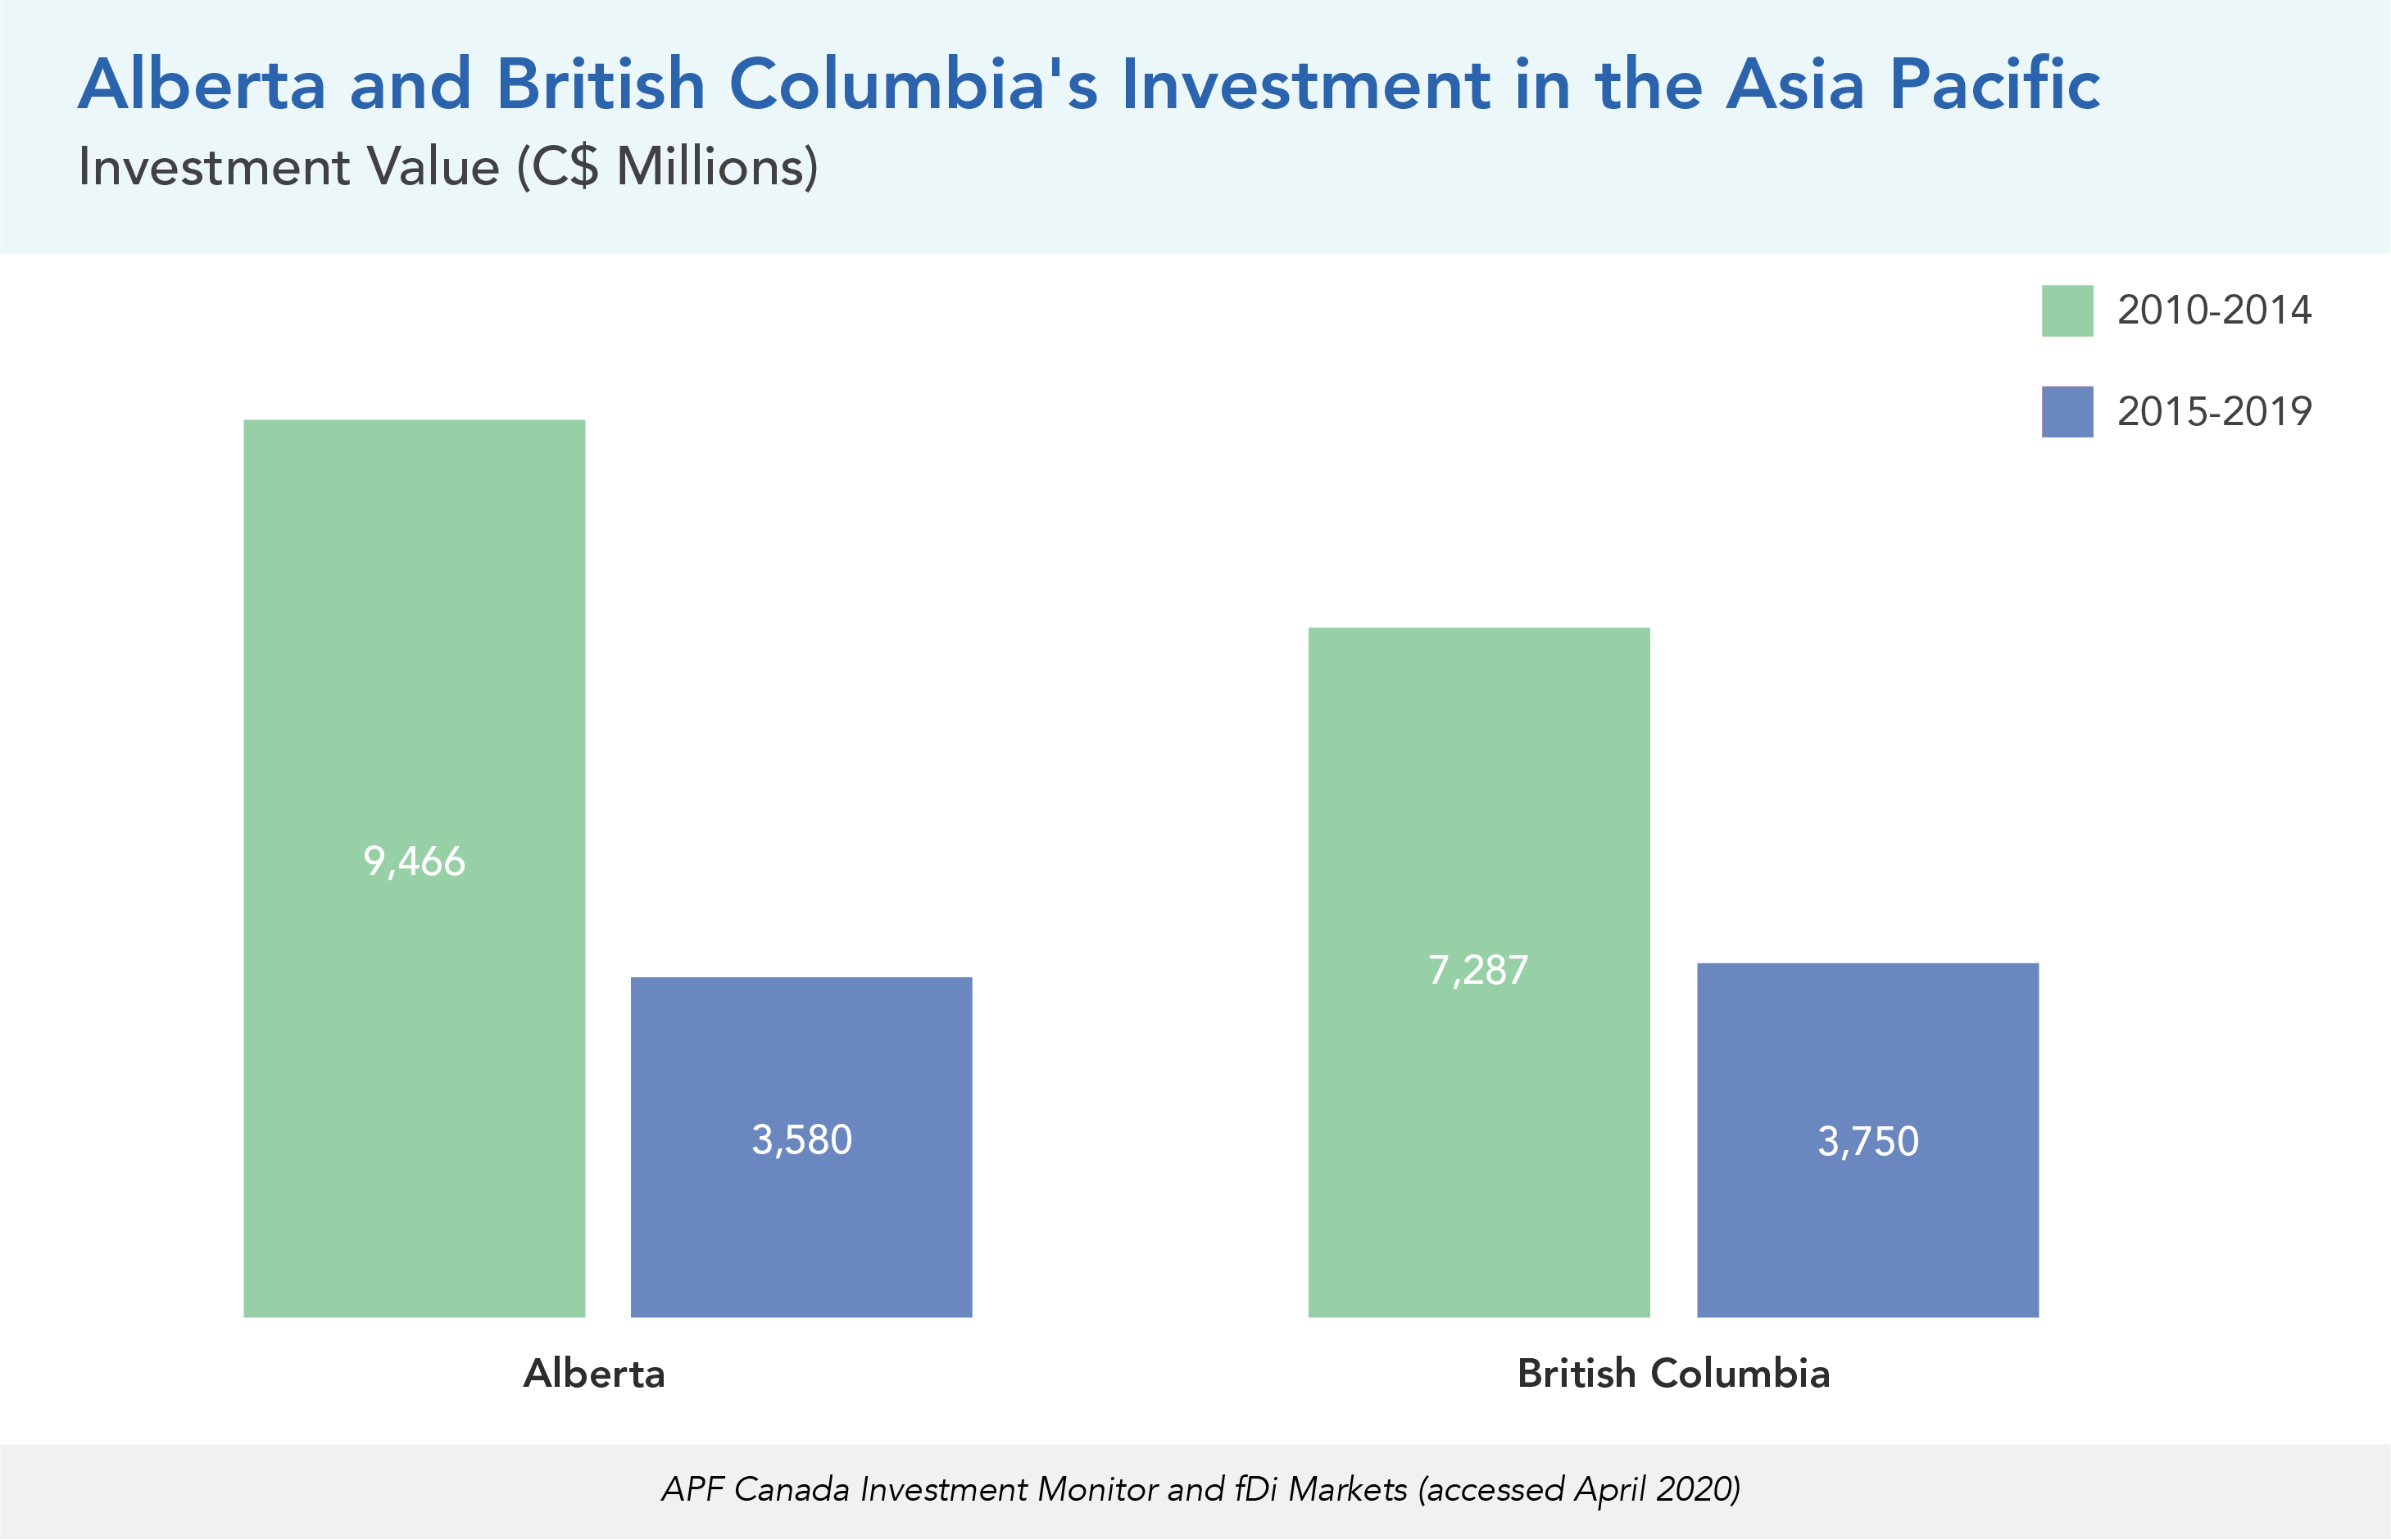 Alberta and British Columbia's Investment in the Asia Pacific